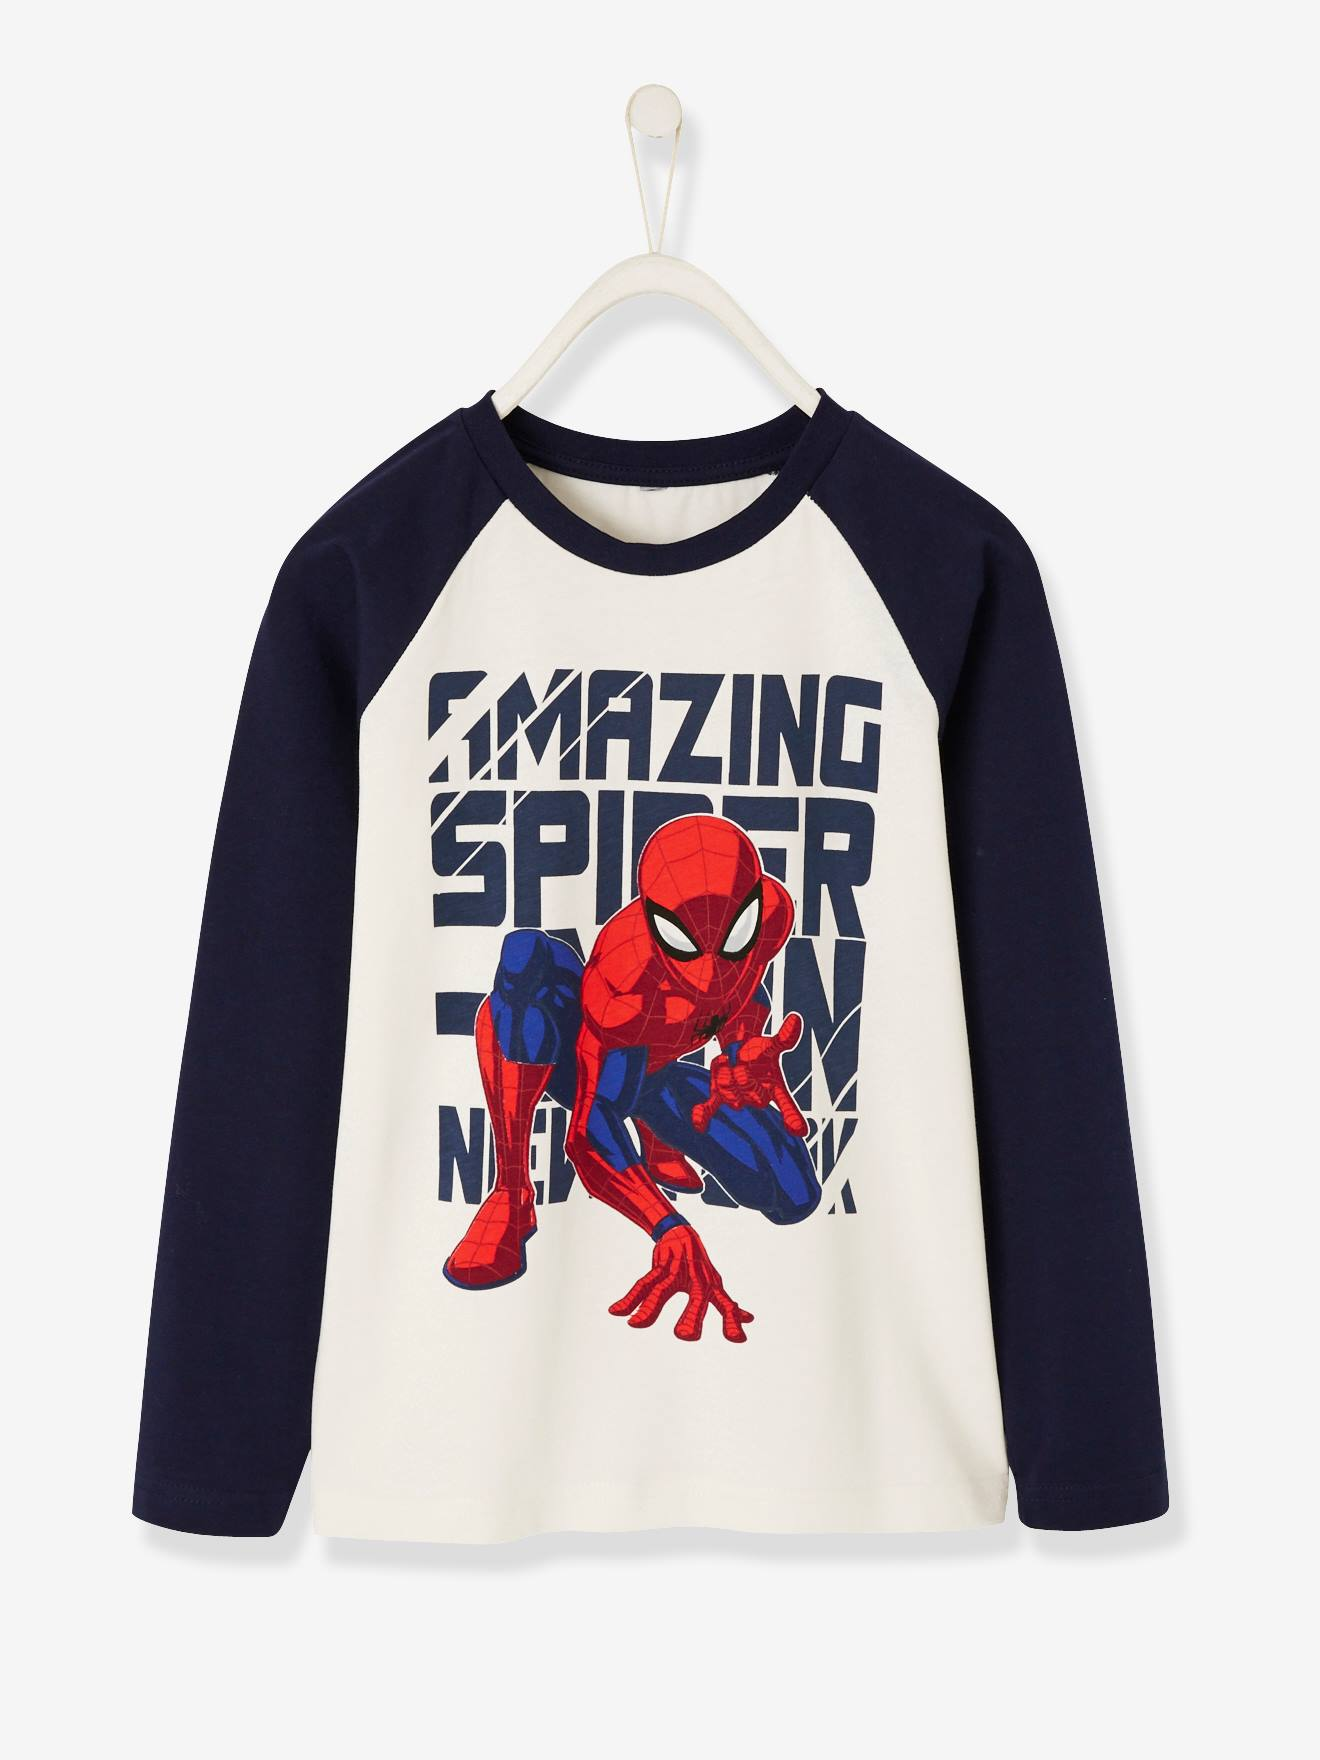 Boys T-Shirt Long Sleeve Marvel The Amazing Spiderman Top Tee 1 to 6 Years